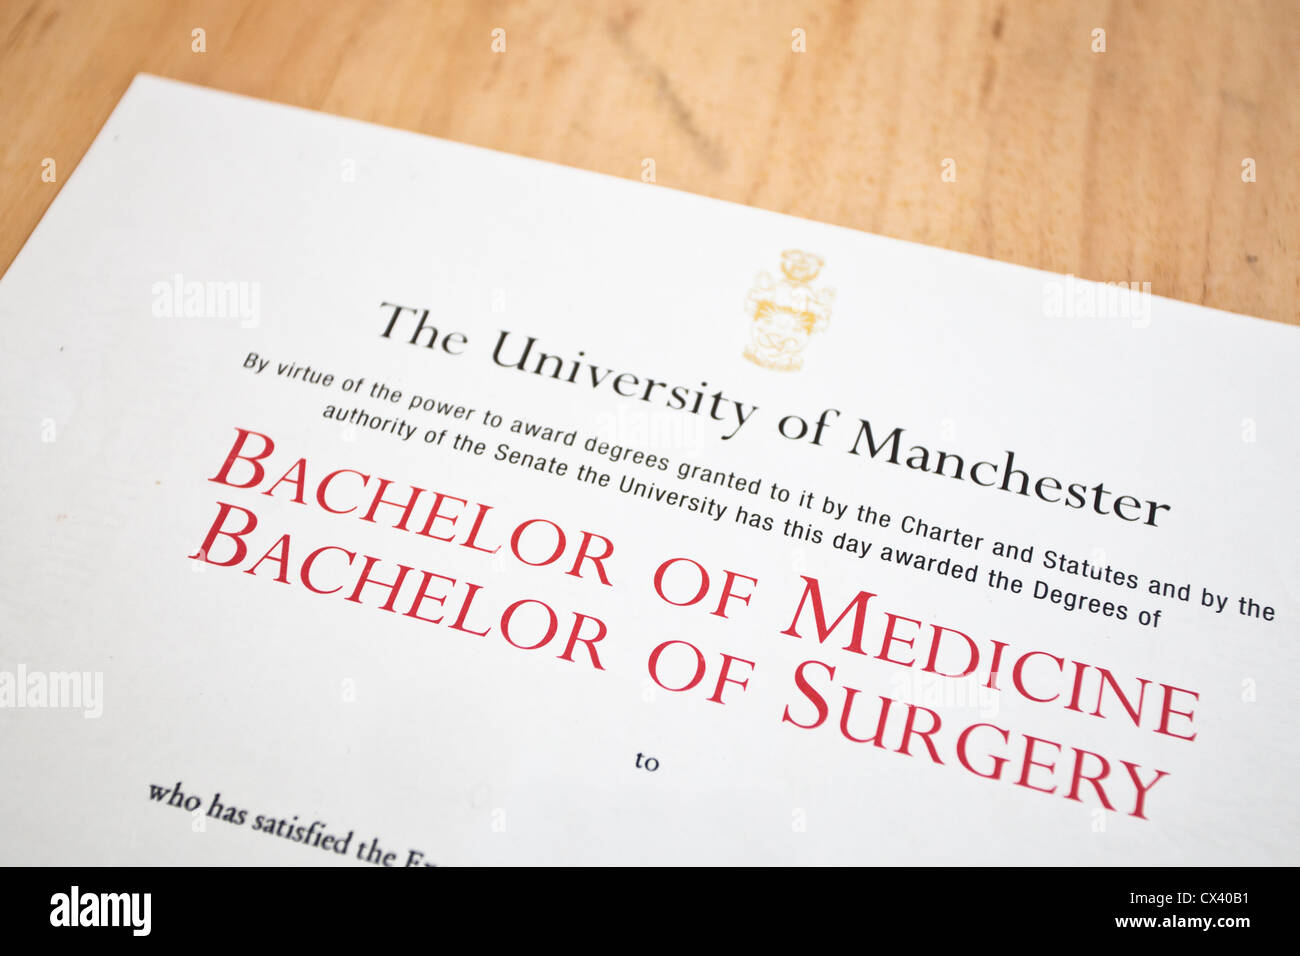 Medical degree certificate from Manchester University, UK